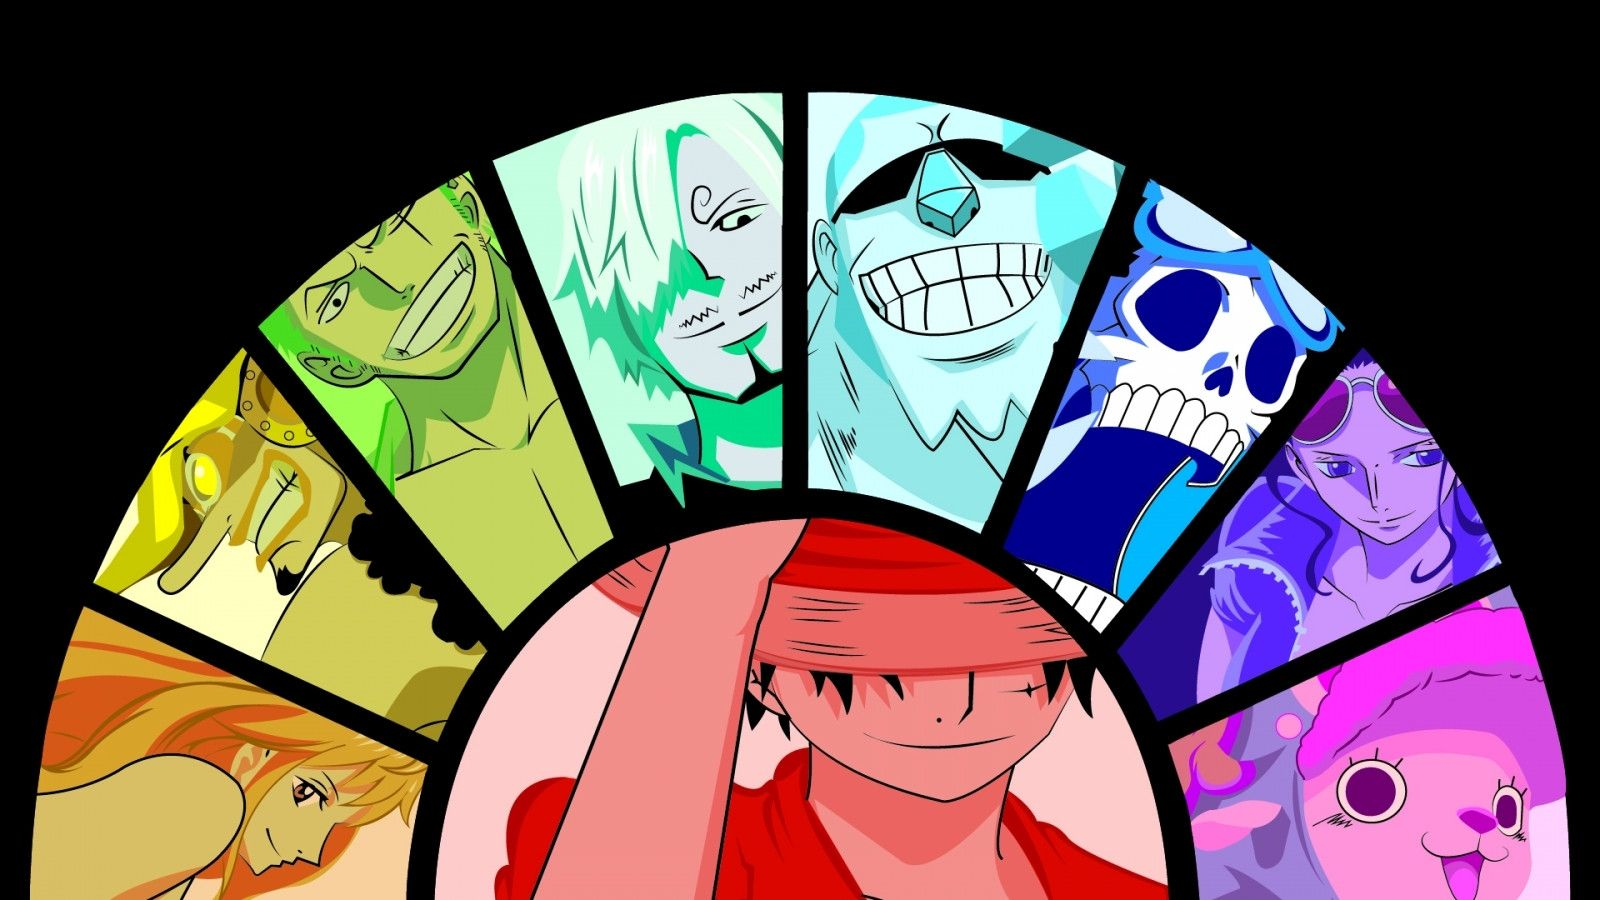 wallpaper hd one piece